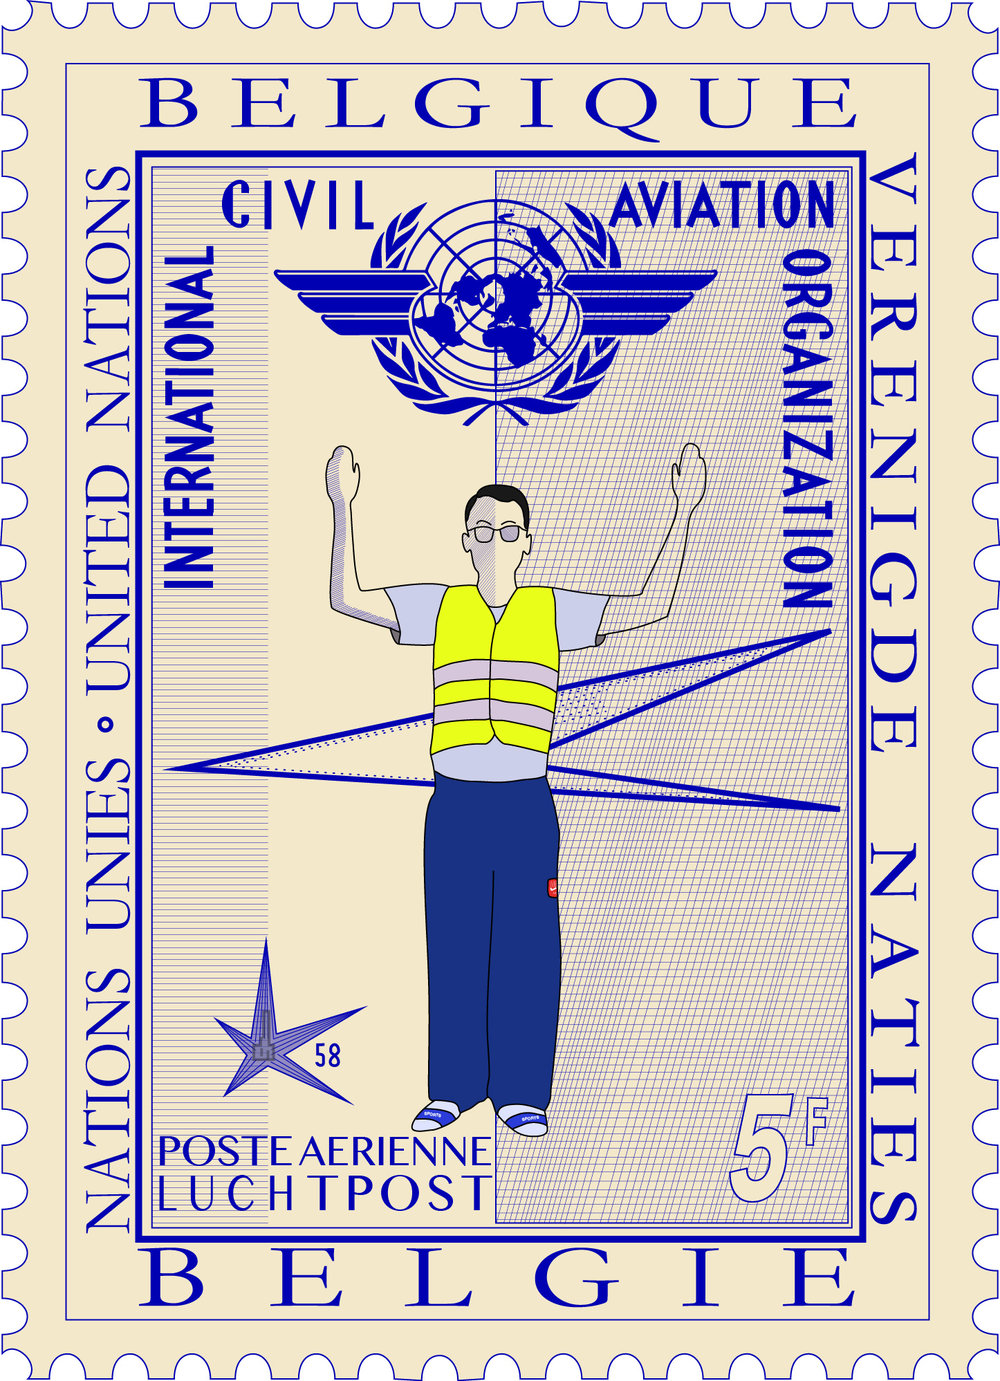 Belgium Postage Stamp Dedicated to ICAO and UN, 1958  (2016)